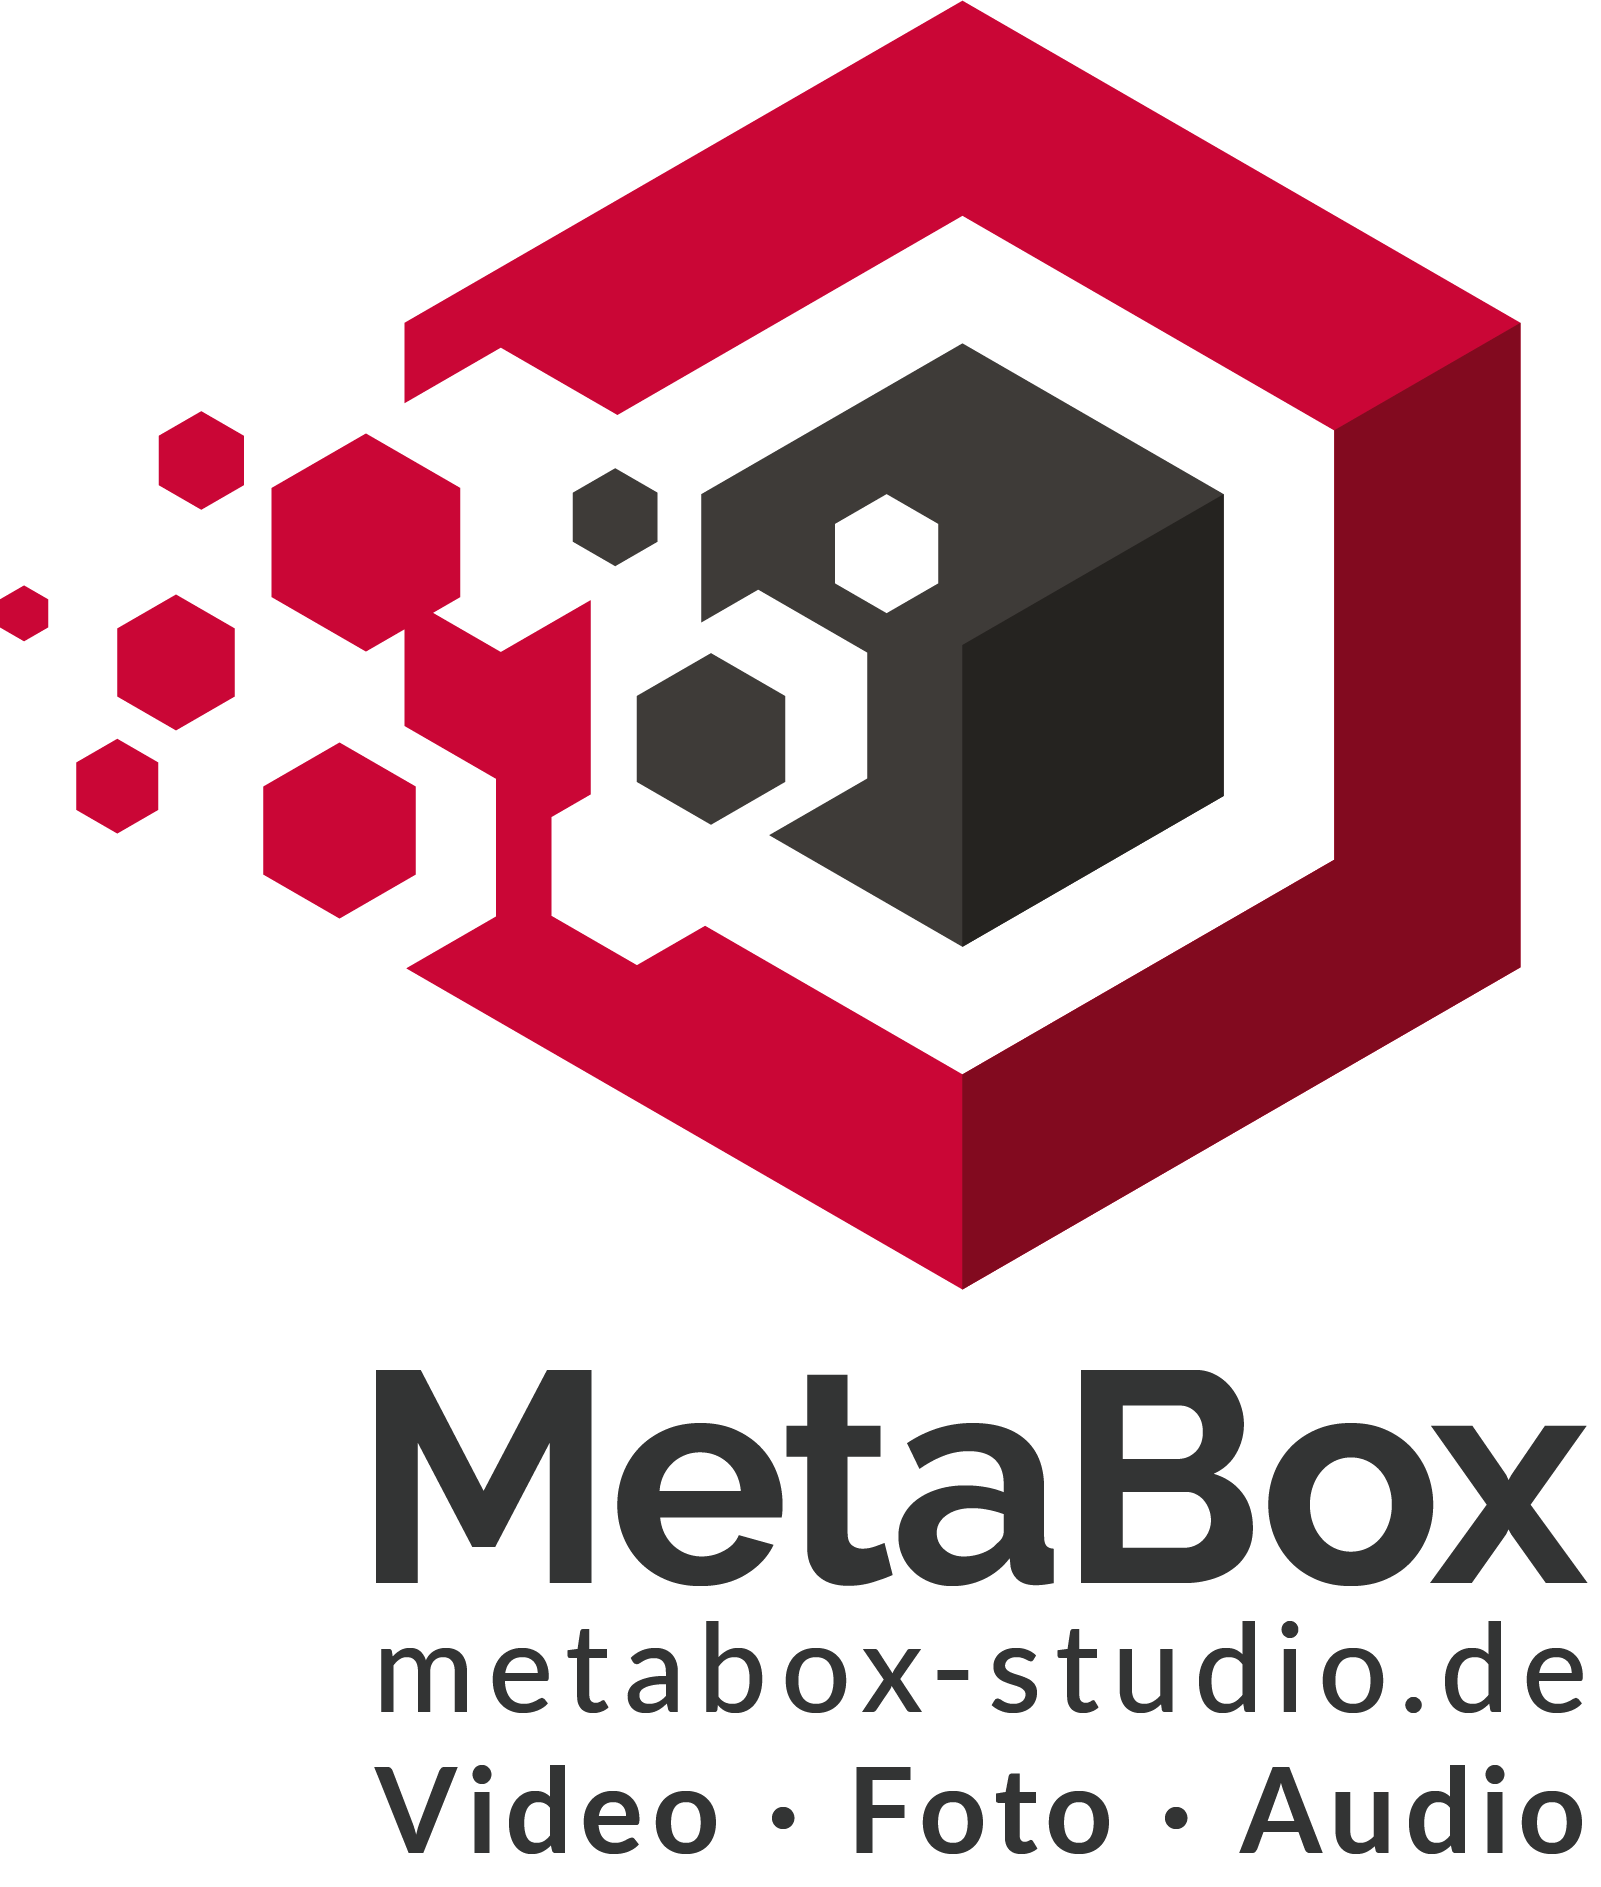 metabox-studio